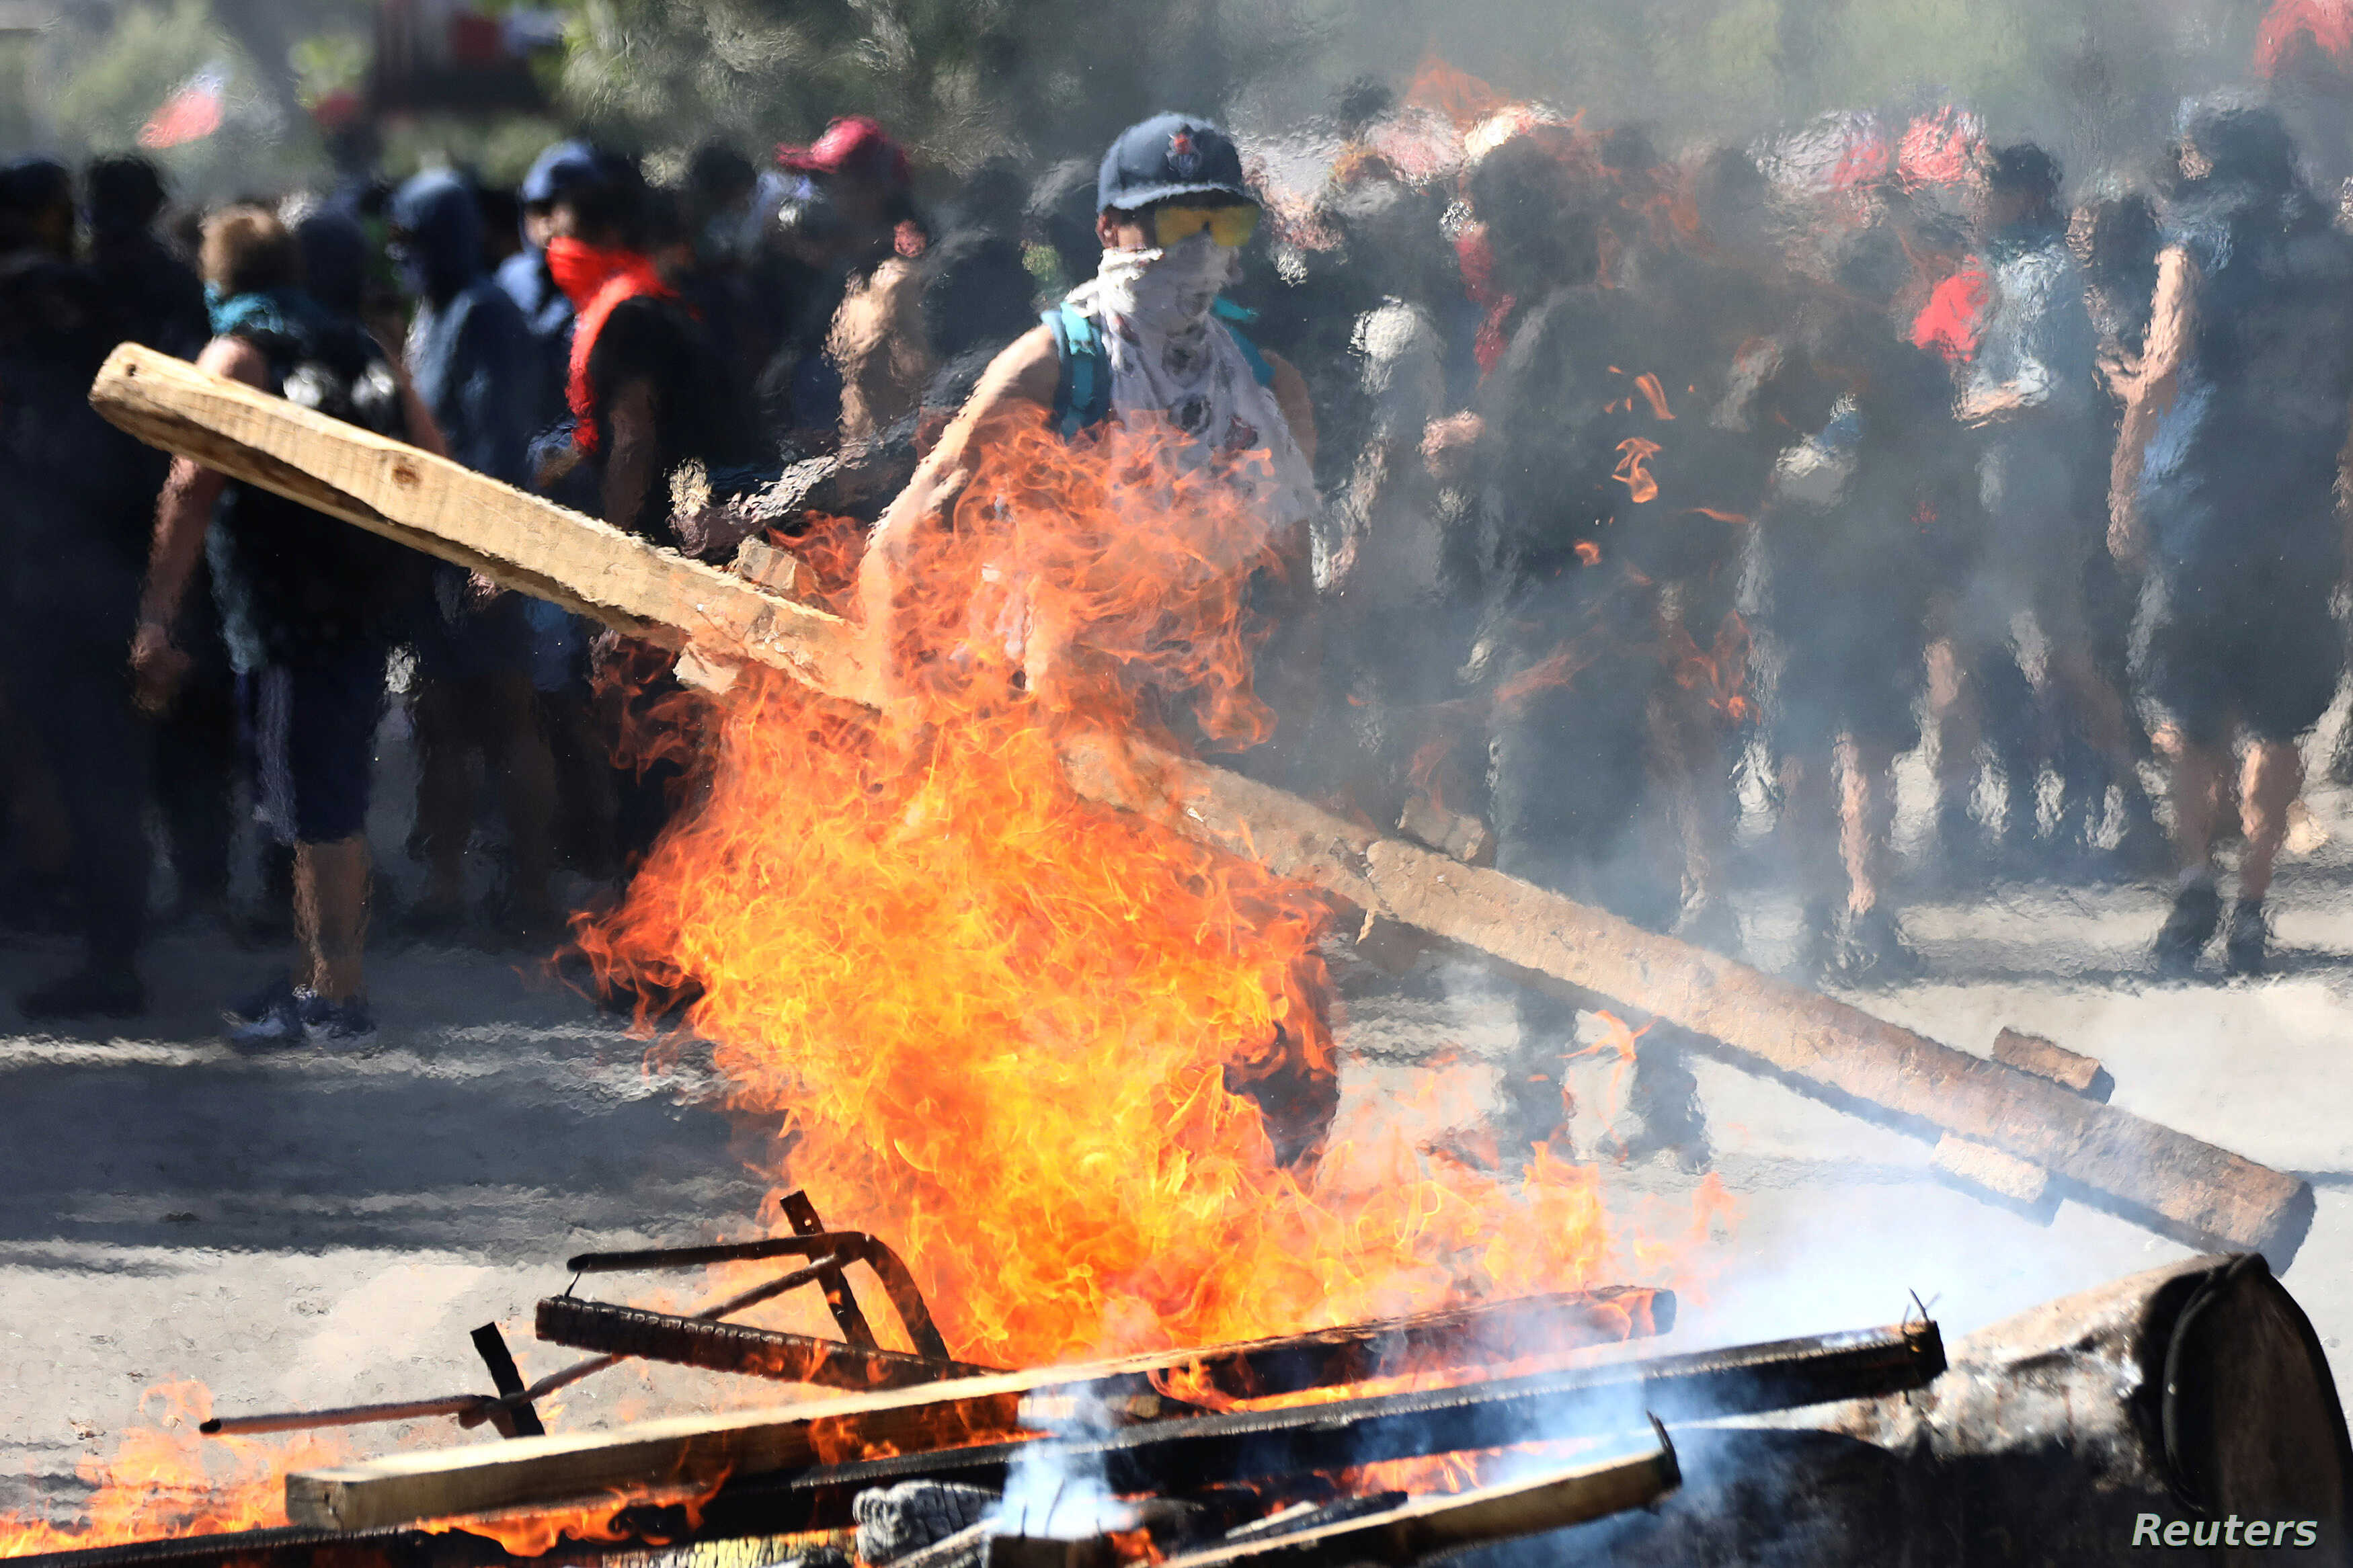 A demonstrator sets a barricade on fire during a protest against Chile's state economic model in Santiago October 24, 2019…